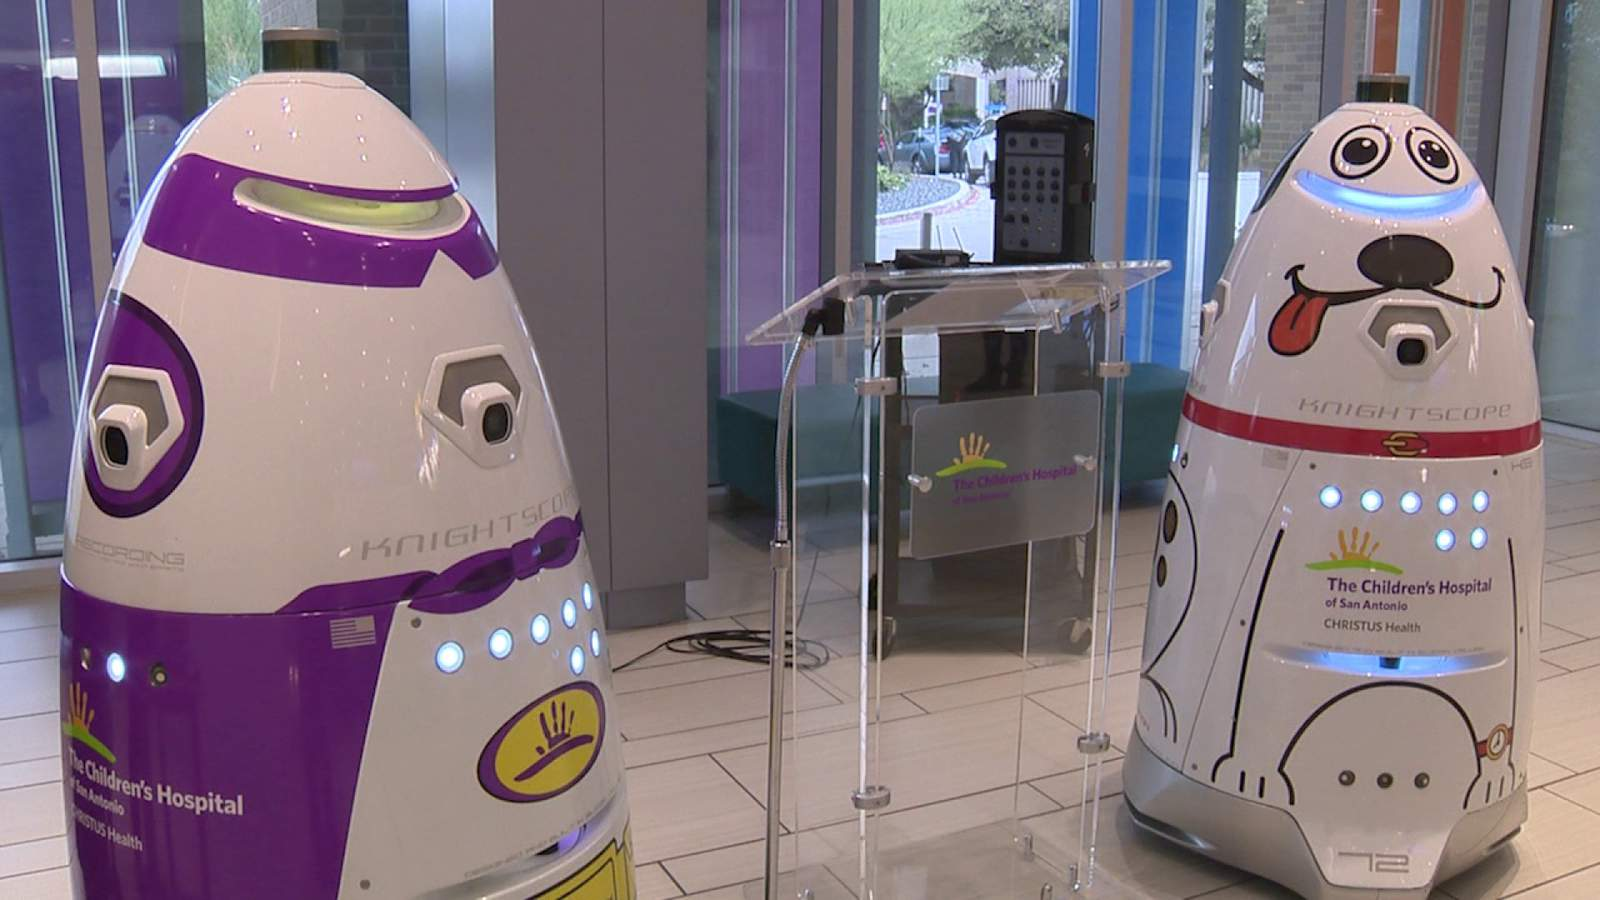 San Antonio hospital introduces security robots